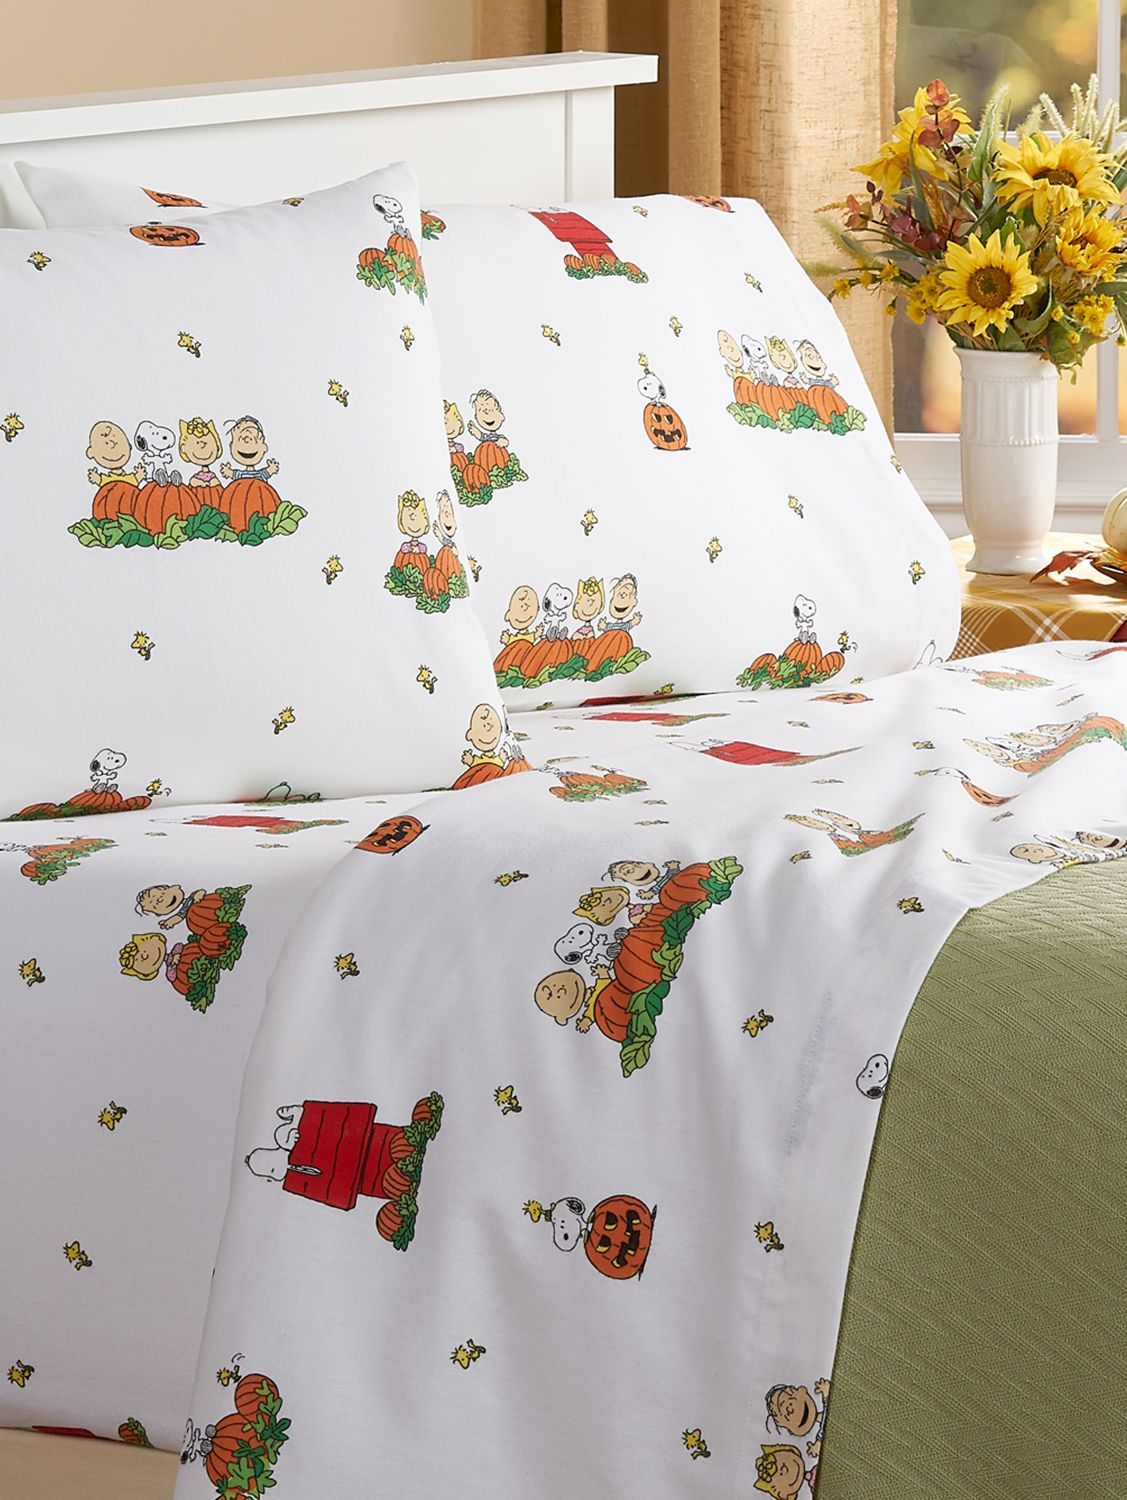 Christmas Flannel Bed Sheets Sets 2020 Peanuts Great Pumpkin Portuguese Cotton Flannel Sheet Set in 2020